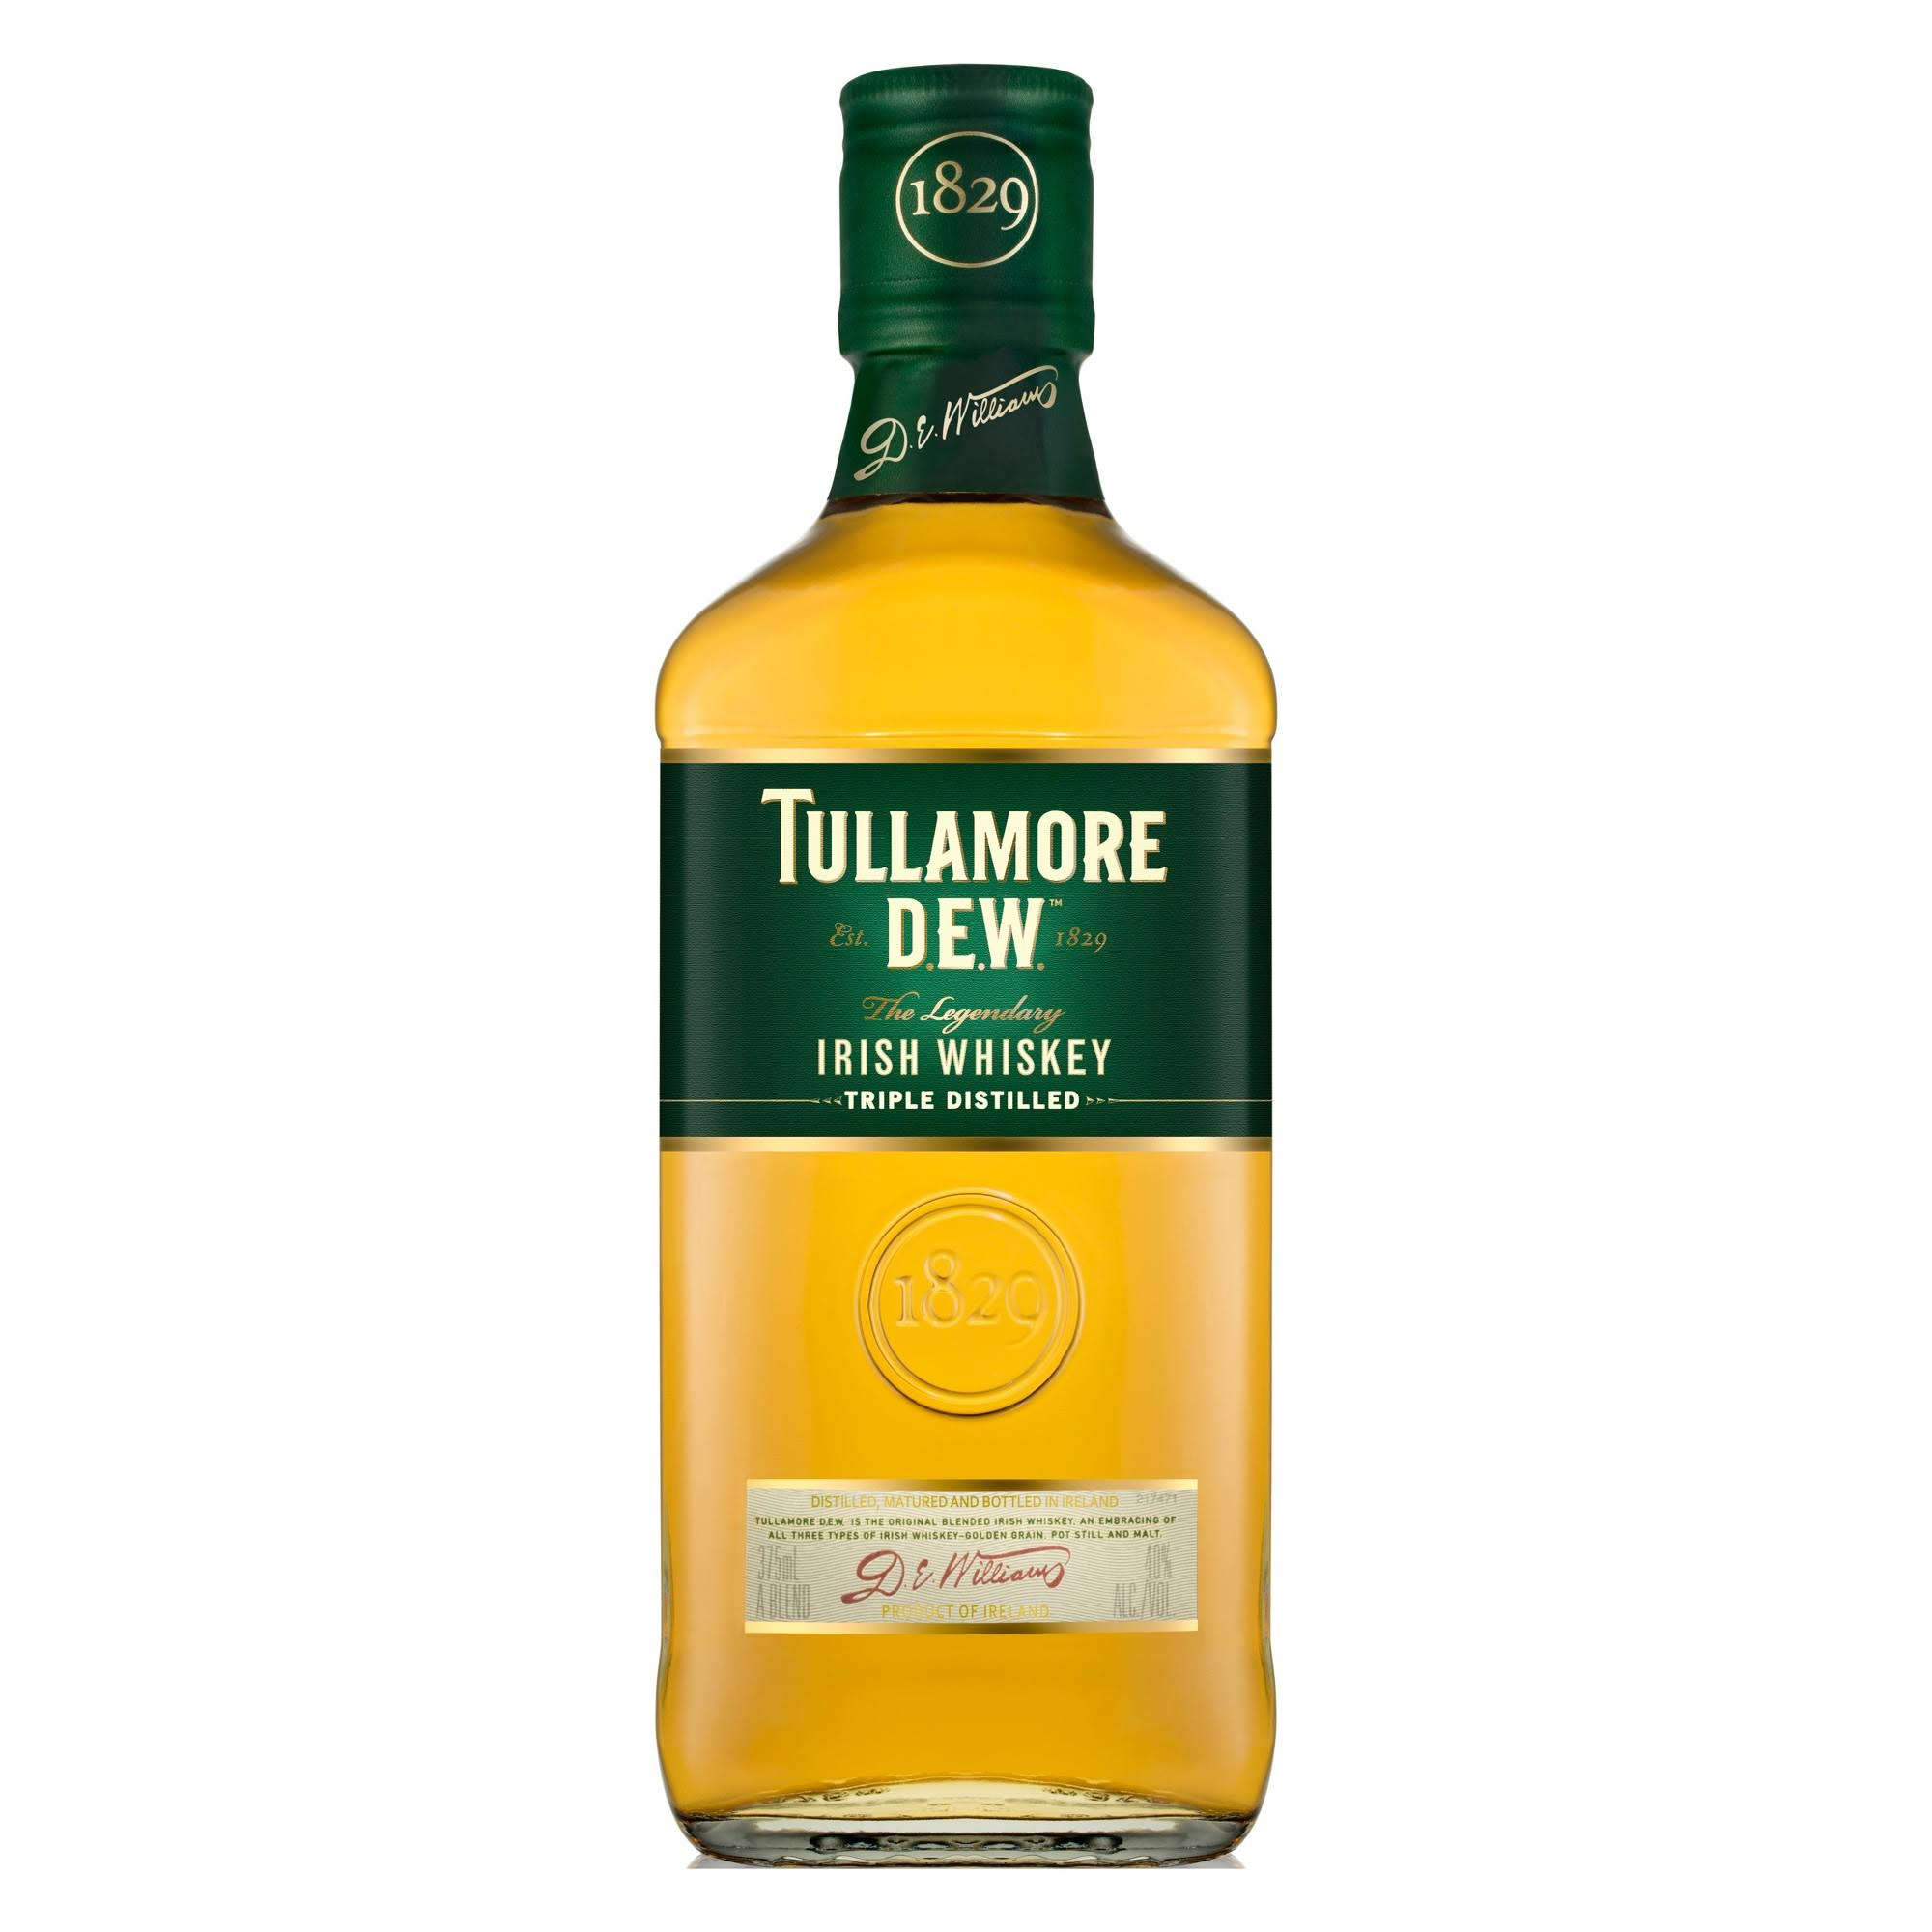 Tullamore DEW Irish Whiskey 375ml